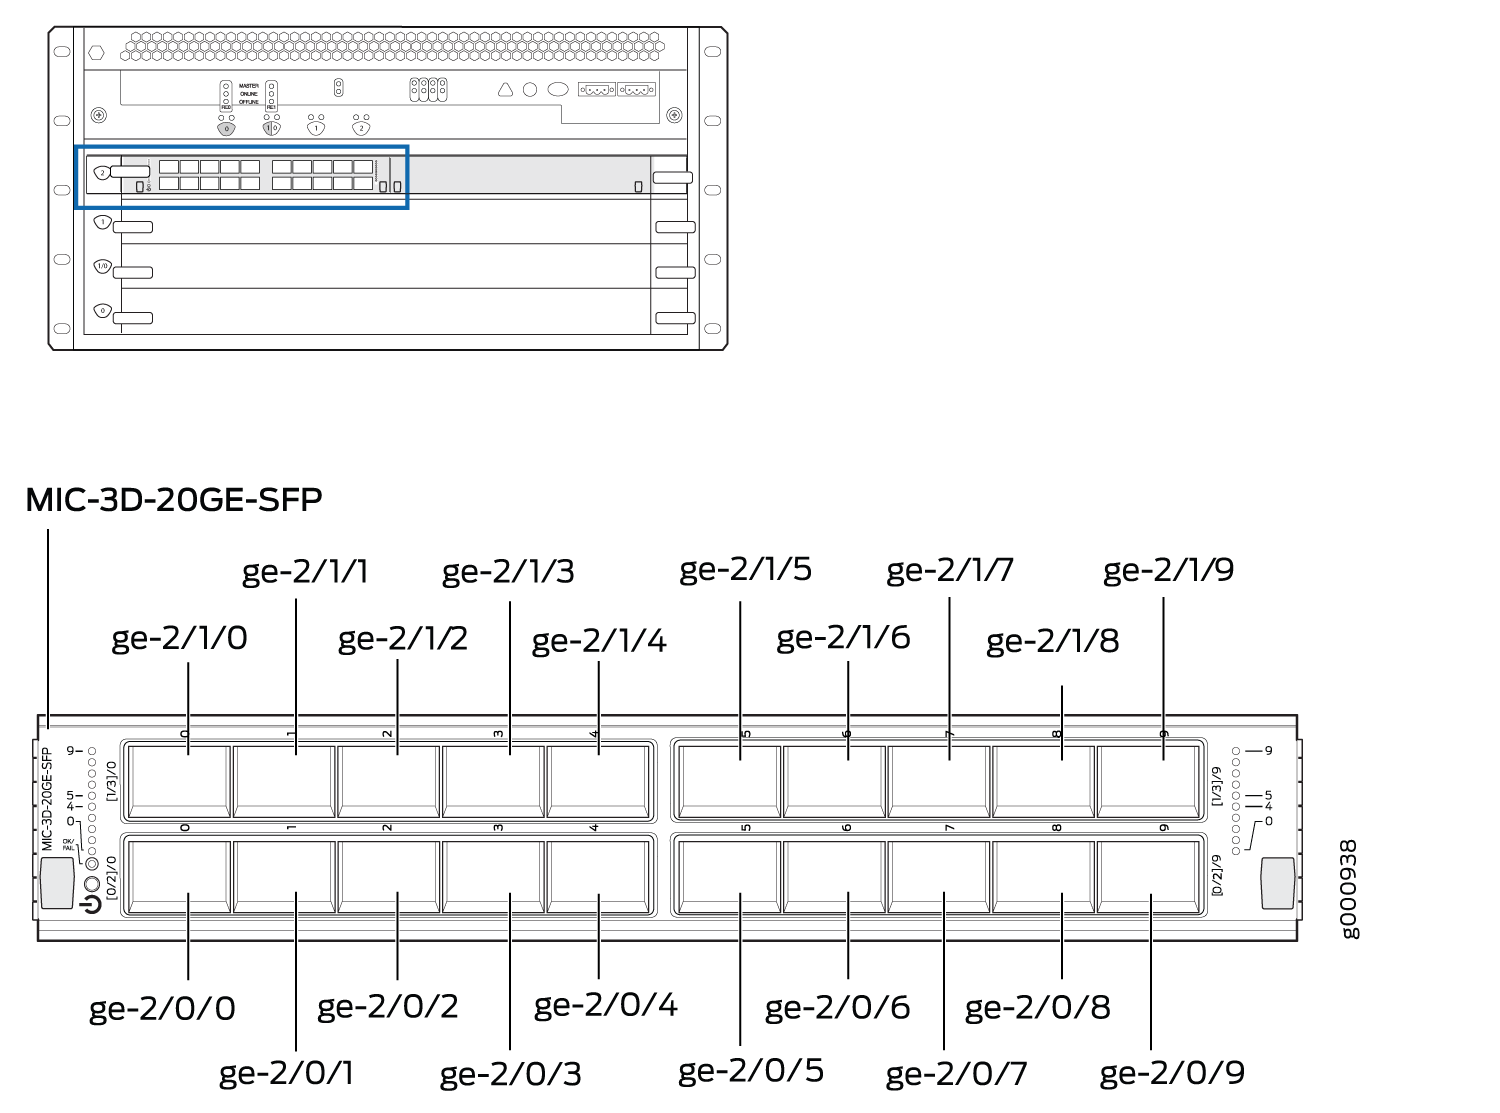 Port Numbering for Gigabit